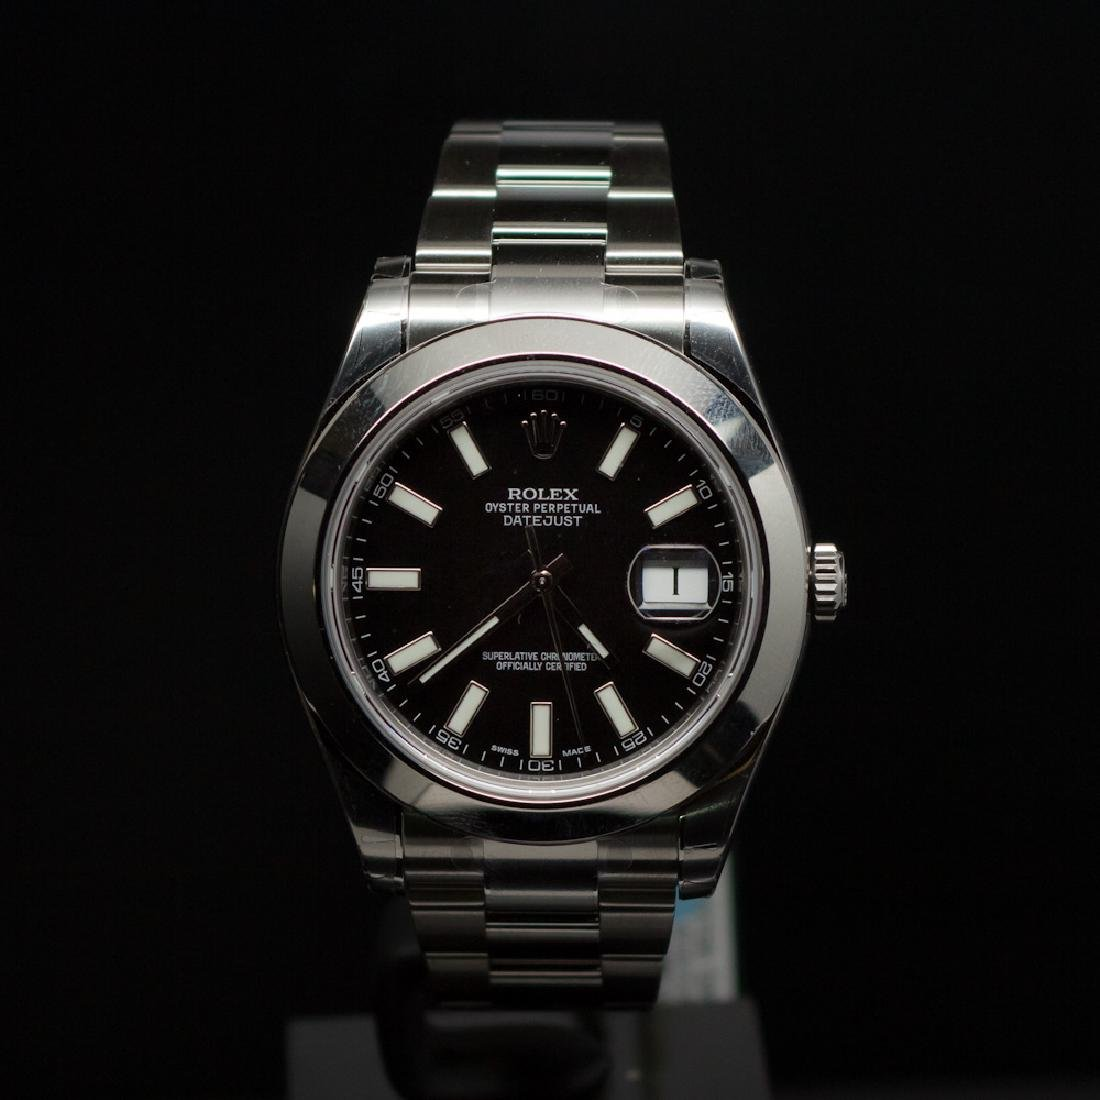 Rolex Stainless Steel Datejust II 41mm Black Dial Men's